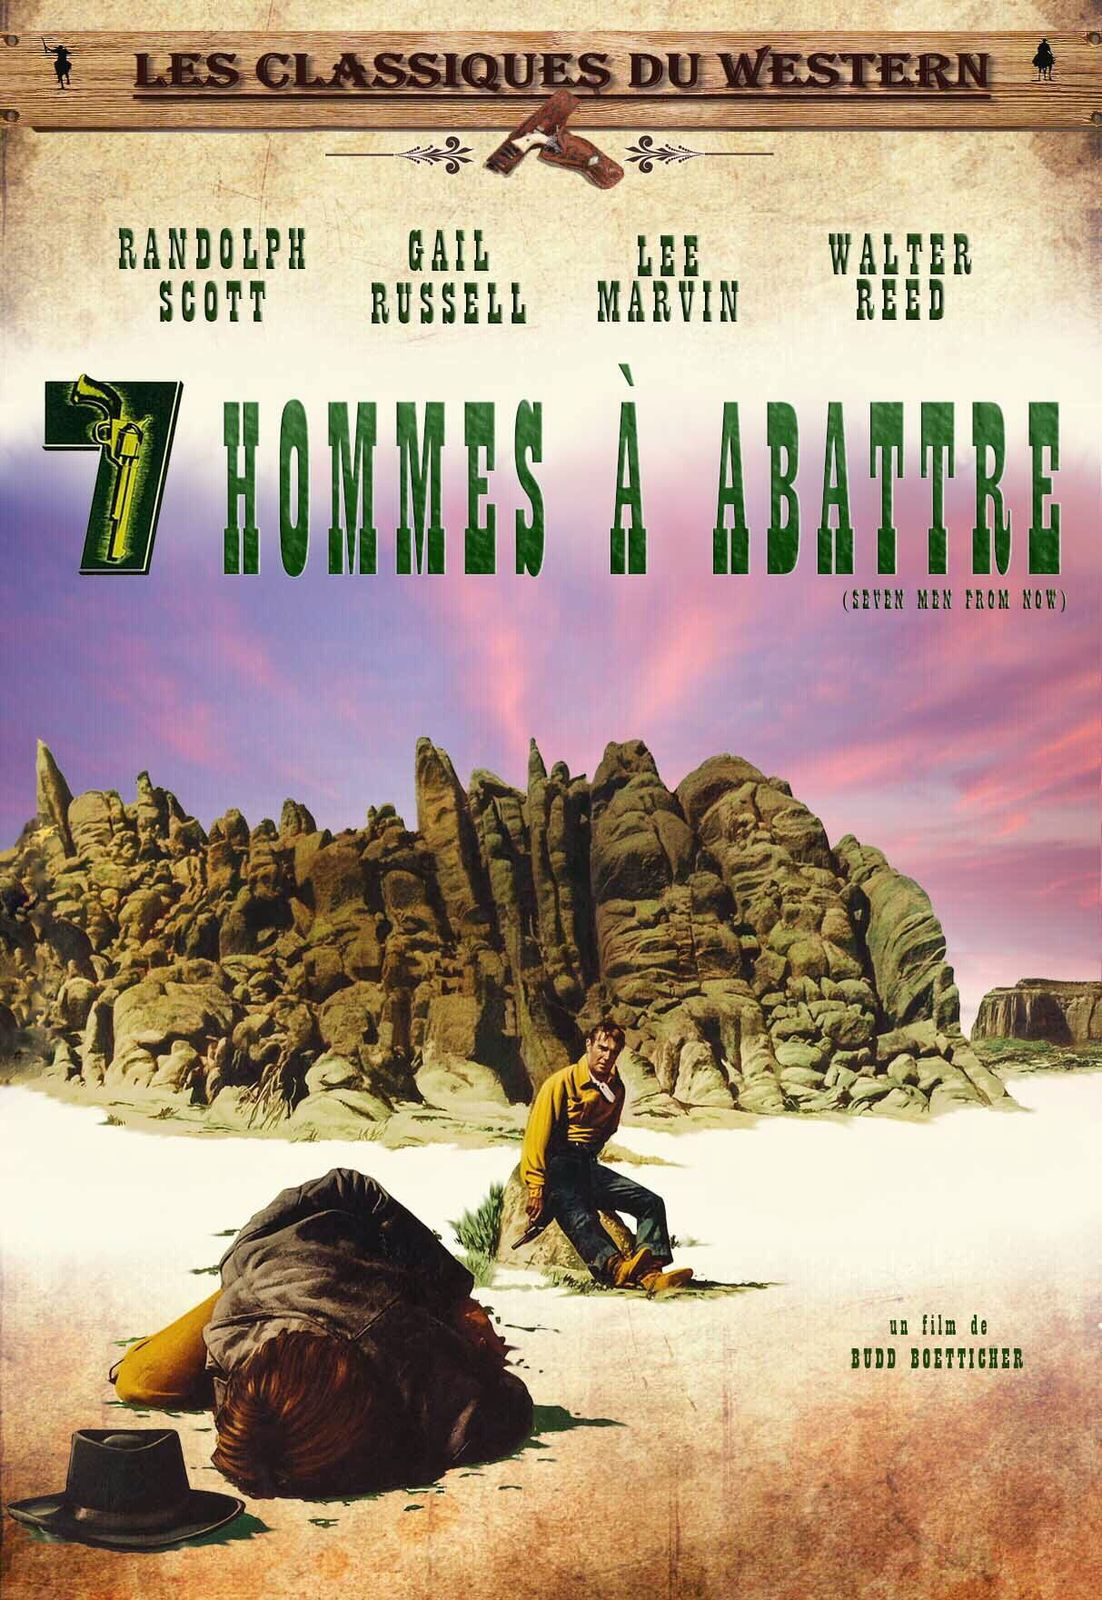 7 HOMMES A ABATTRE (Seven men from now)